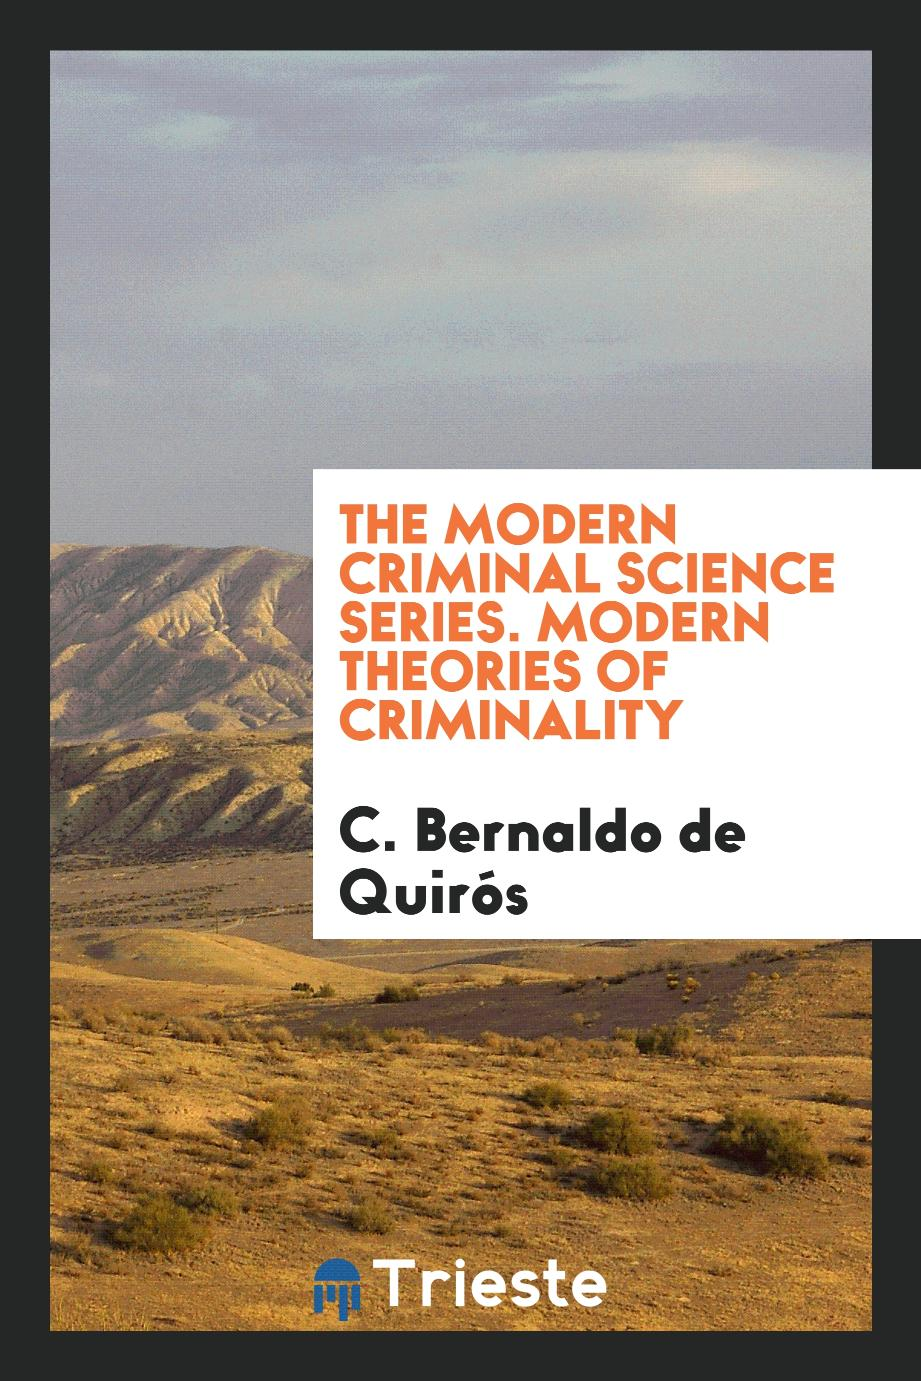 The modern criminal science series. Modern theories of criminality